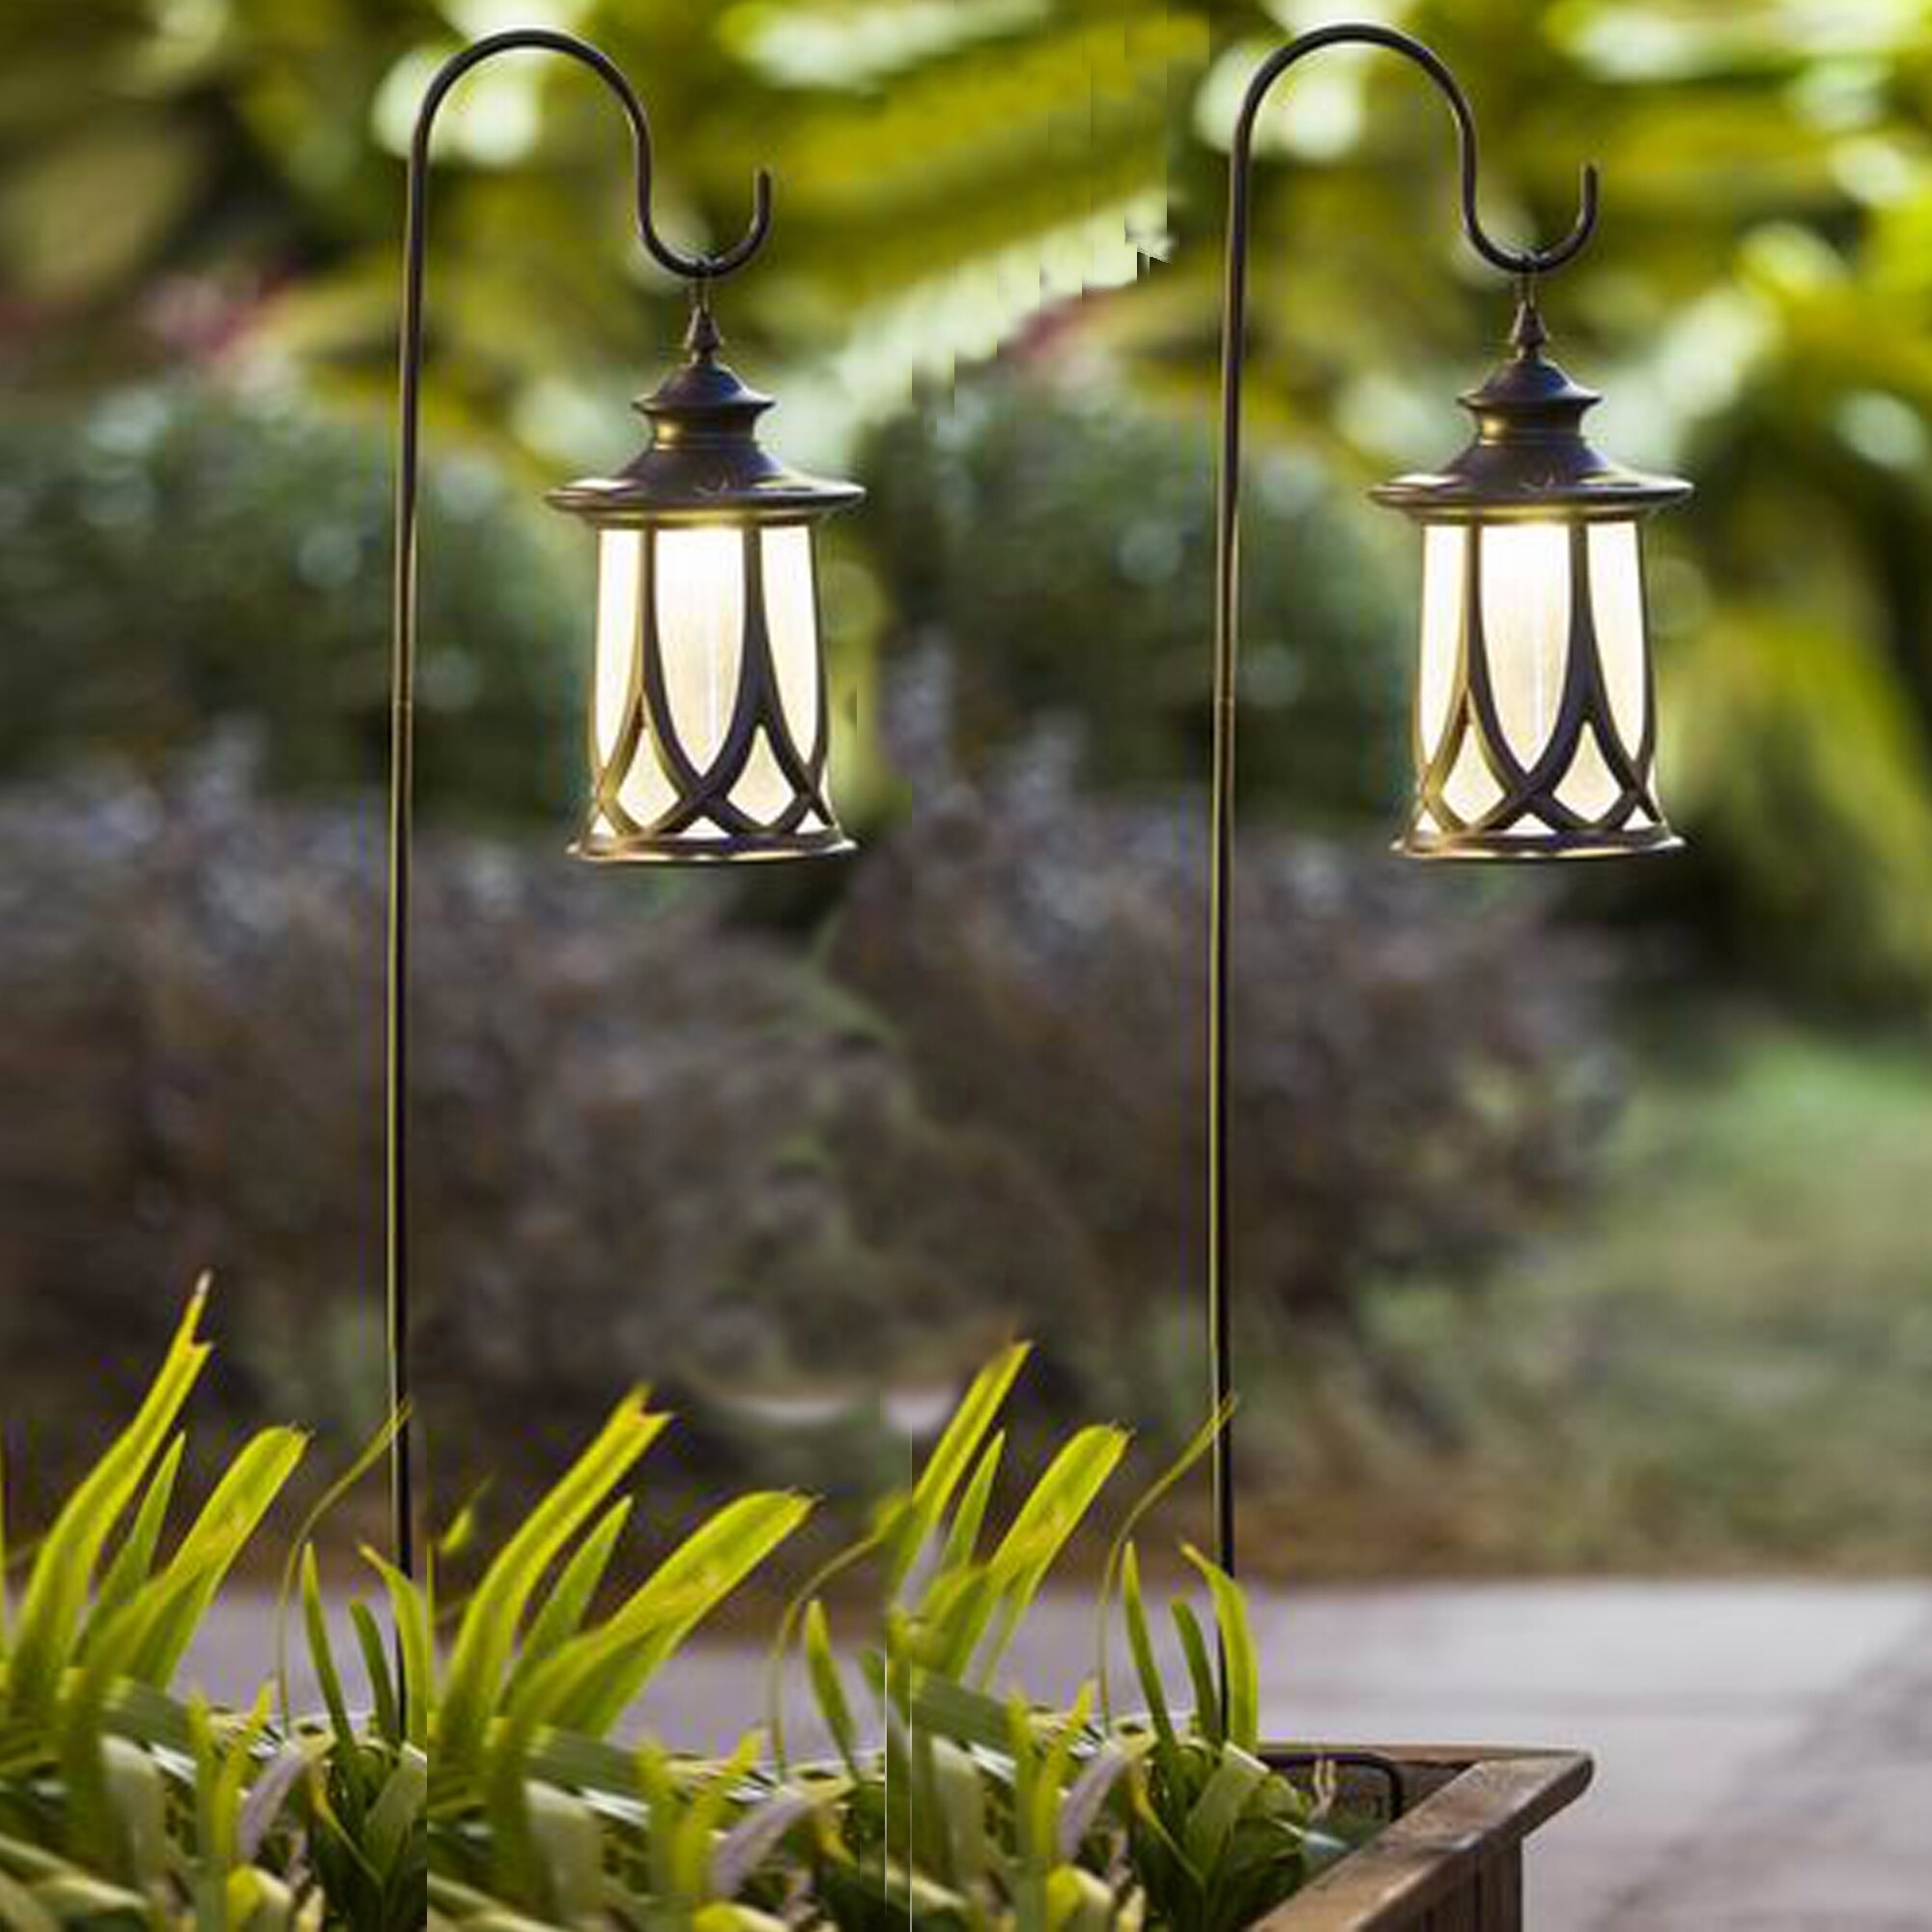 Set of 2 Traditional Solar Lanterns with Shepherd's Hooks...